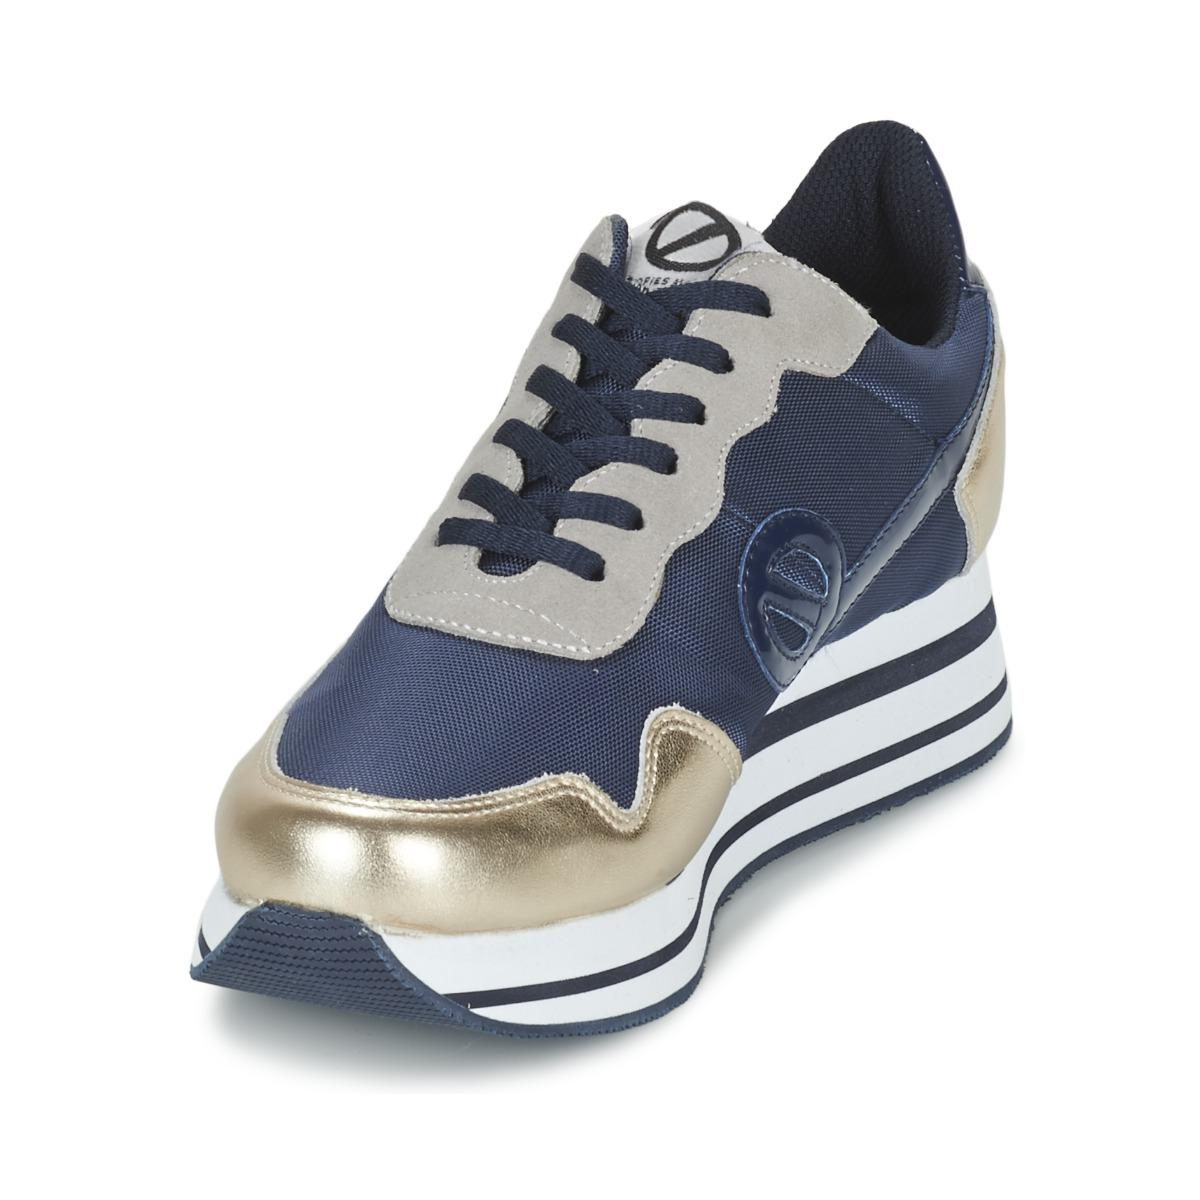 No Name Synthetic Parko Record Women's Shoes (trainers) In Blue